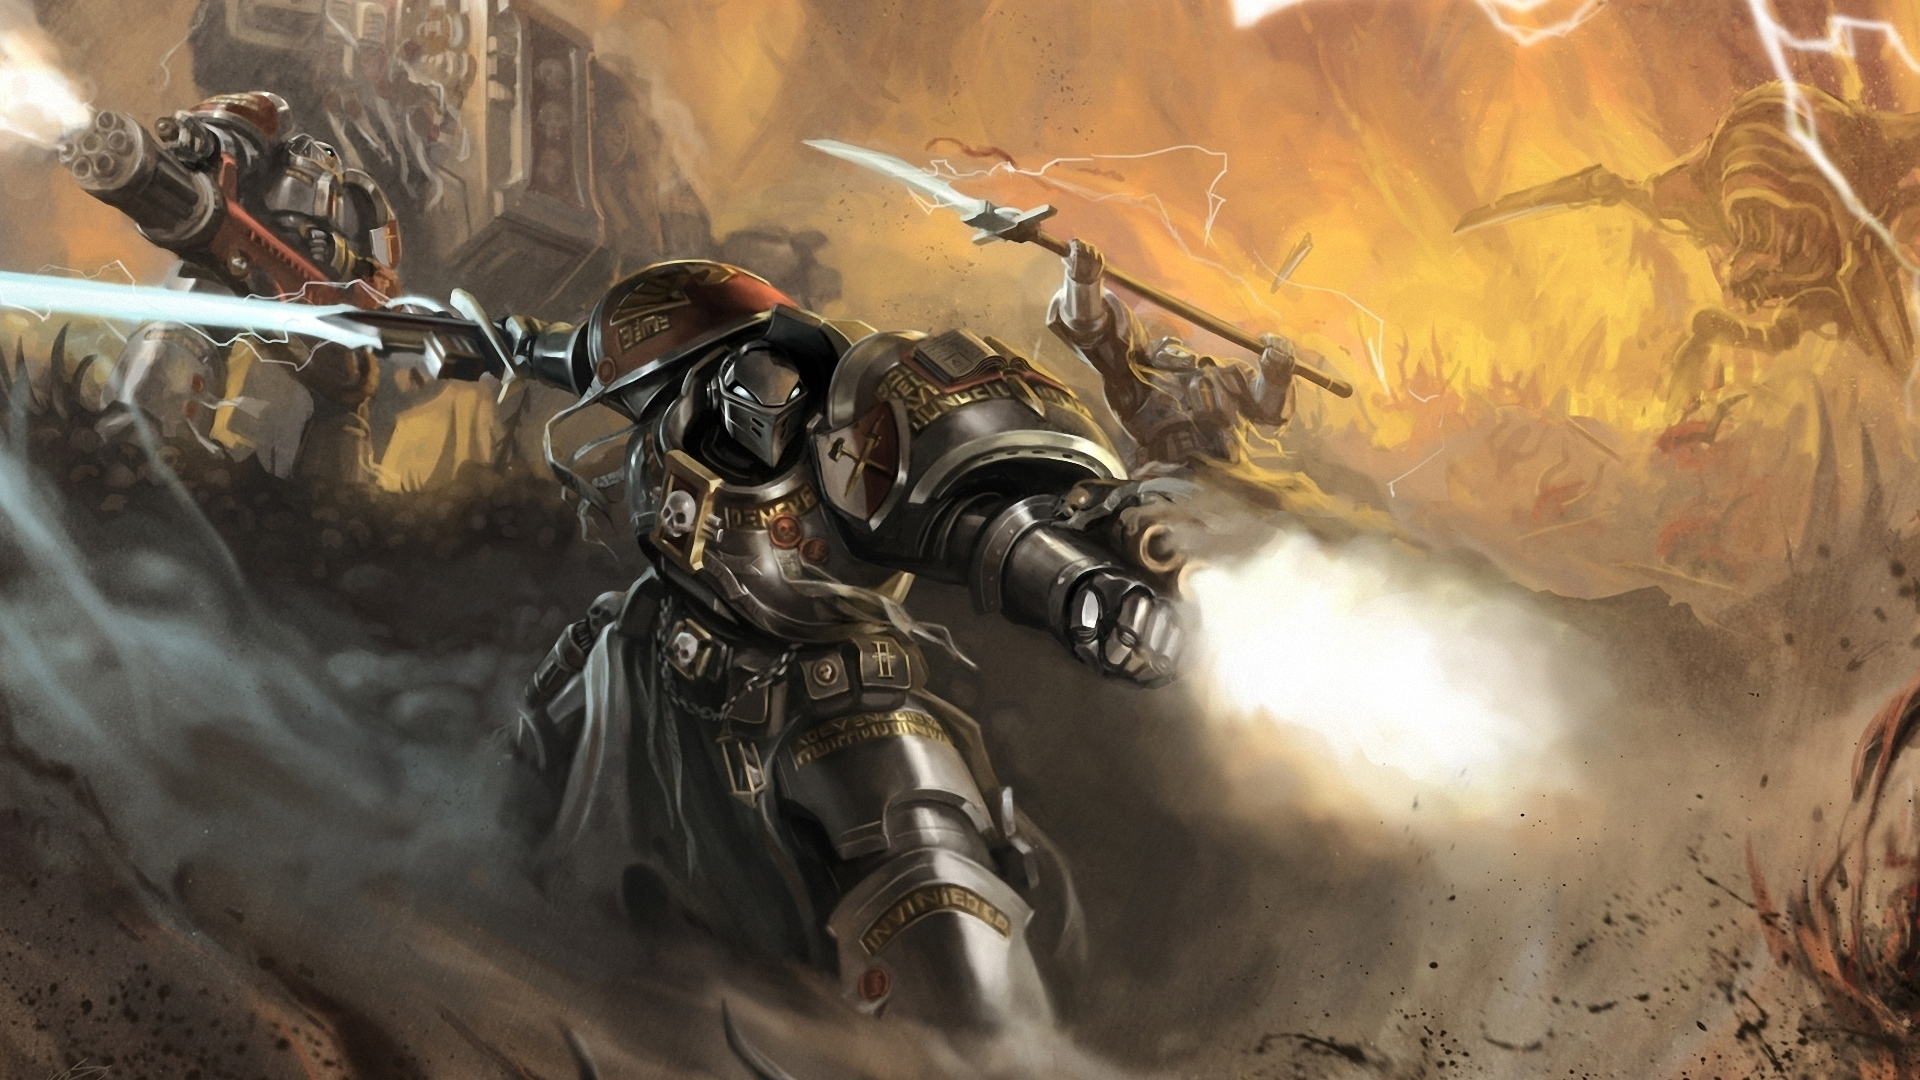 warhammer k wallpapers wallpaper | w40k | pinterest